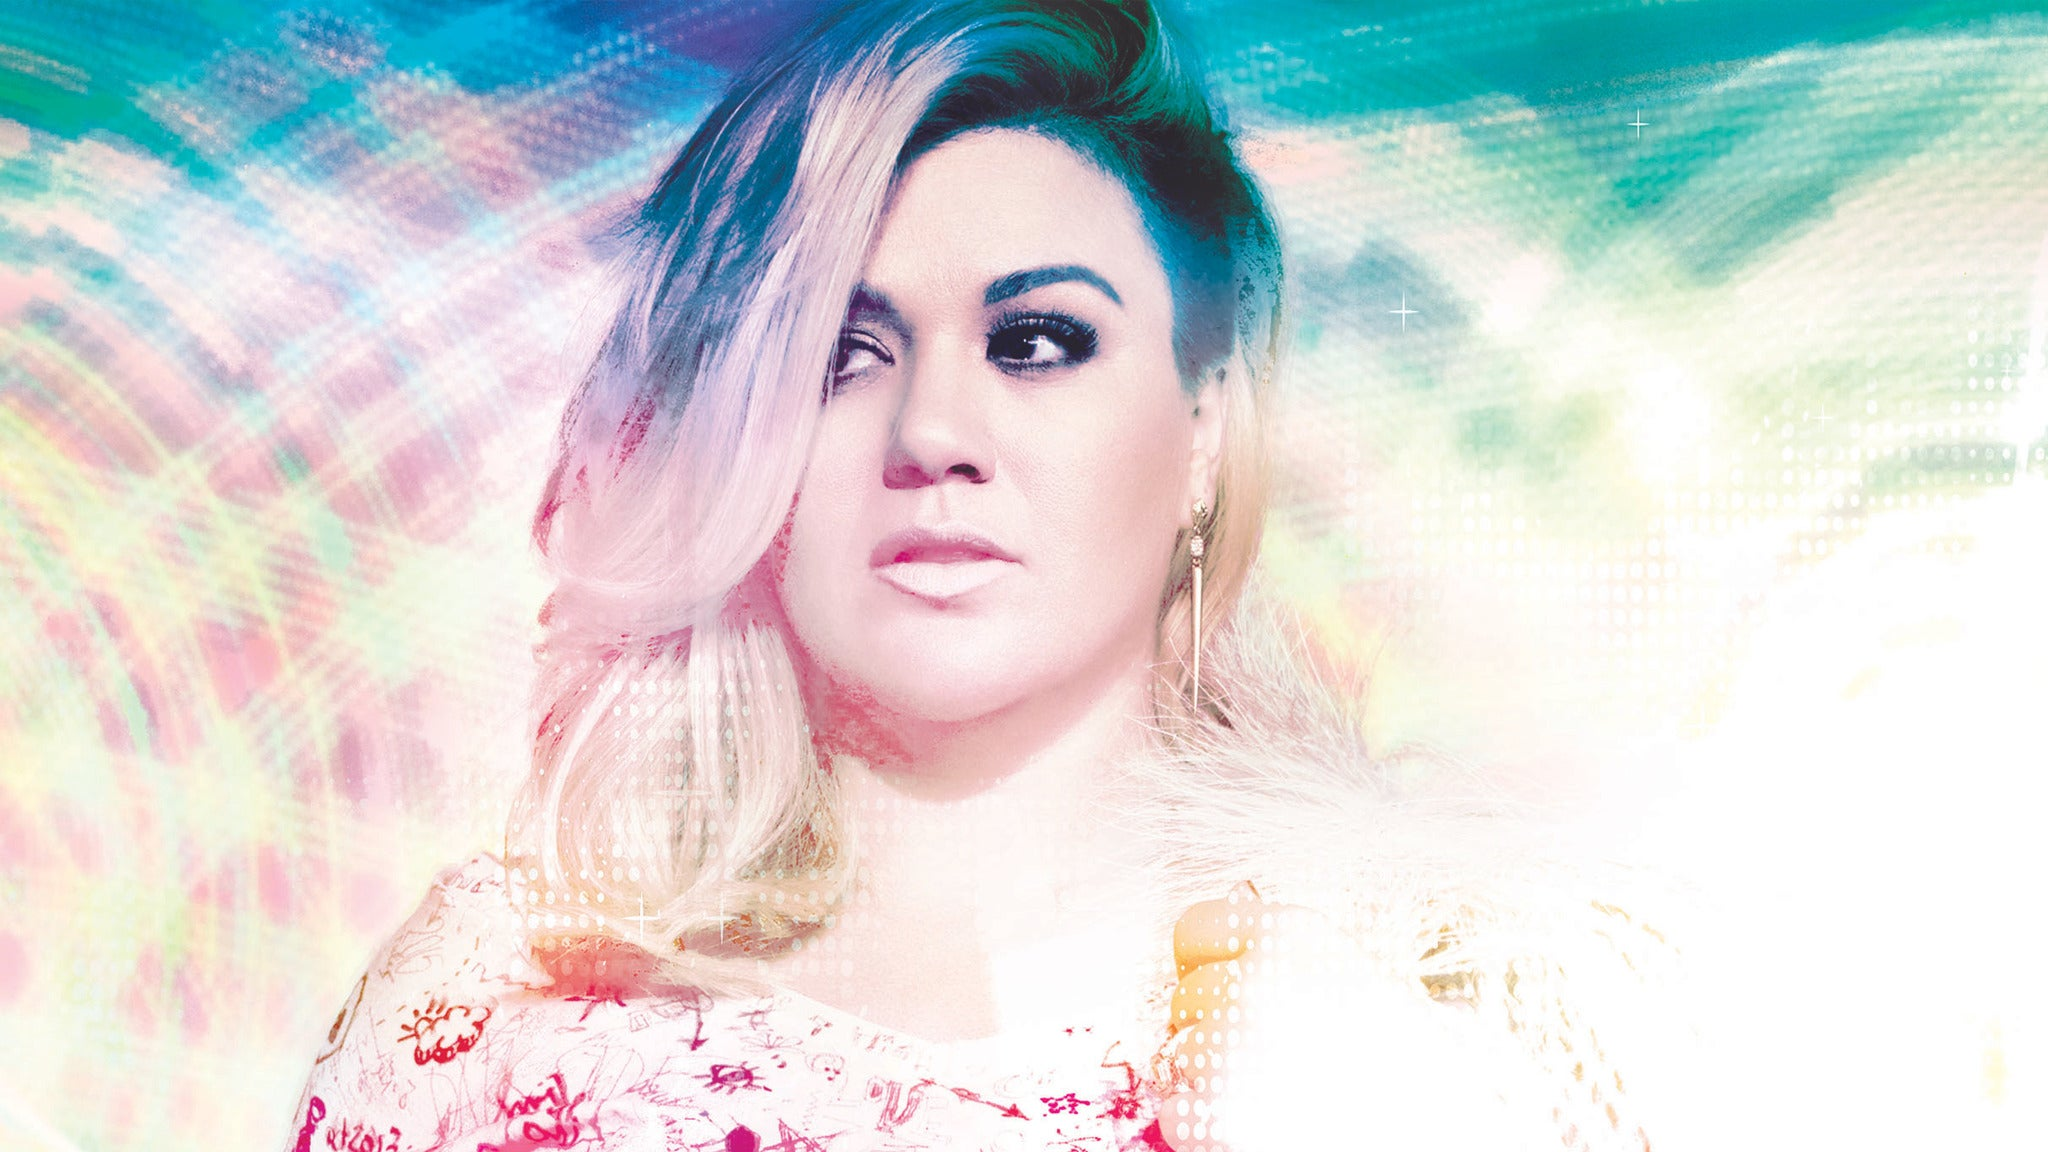 101.9 THE MIX PRESENTS MIRACLE WITH KELLY CLARKSON